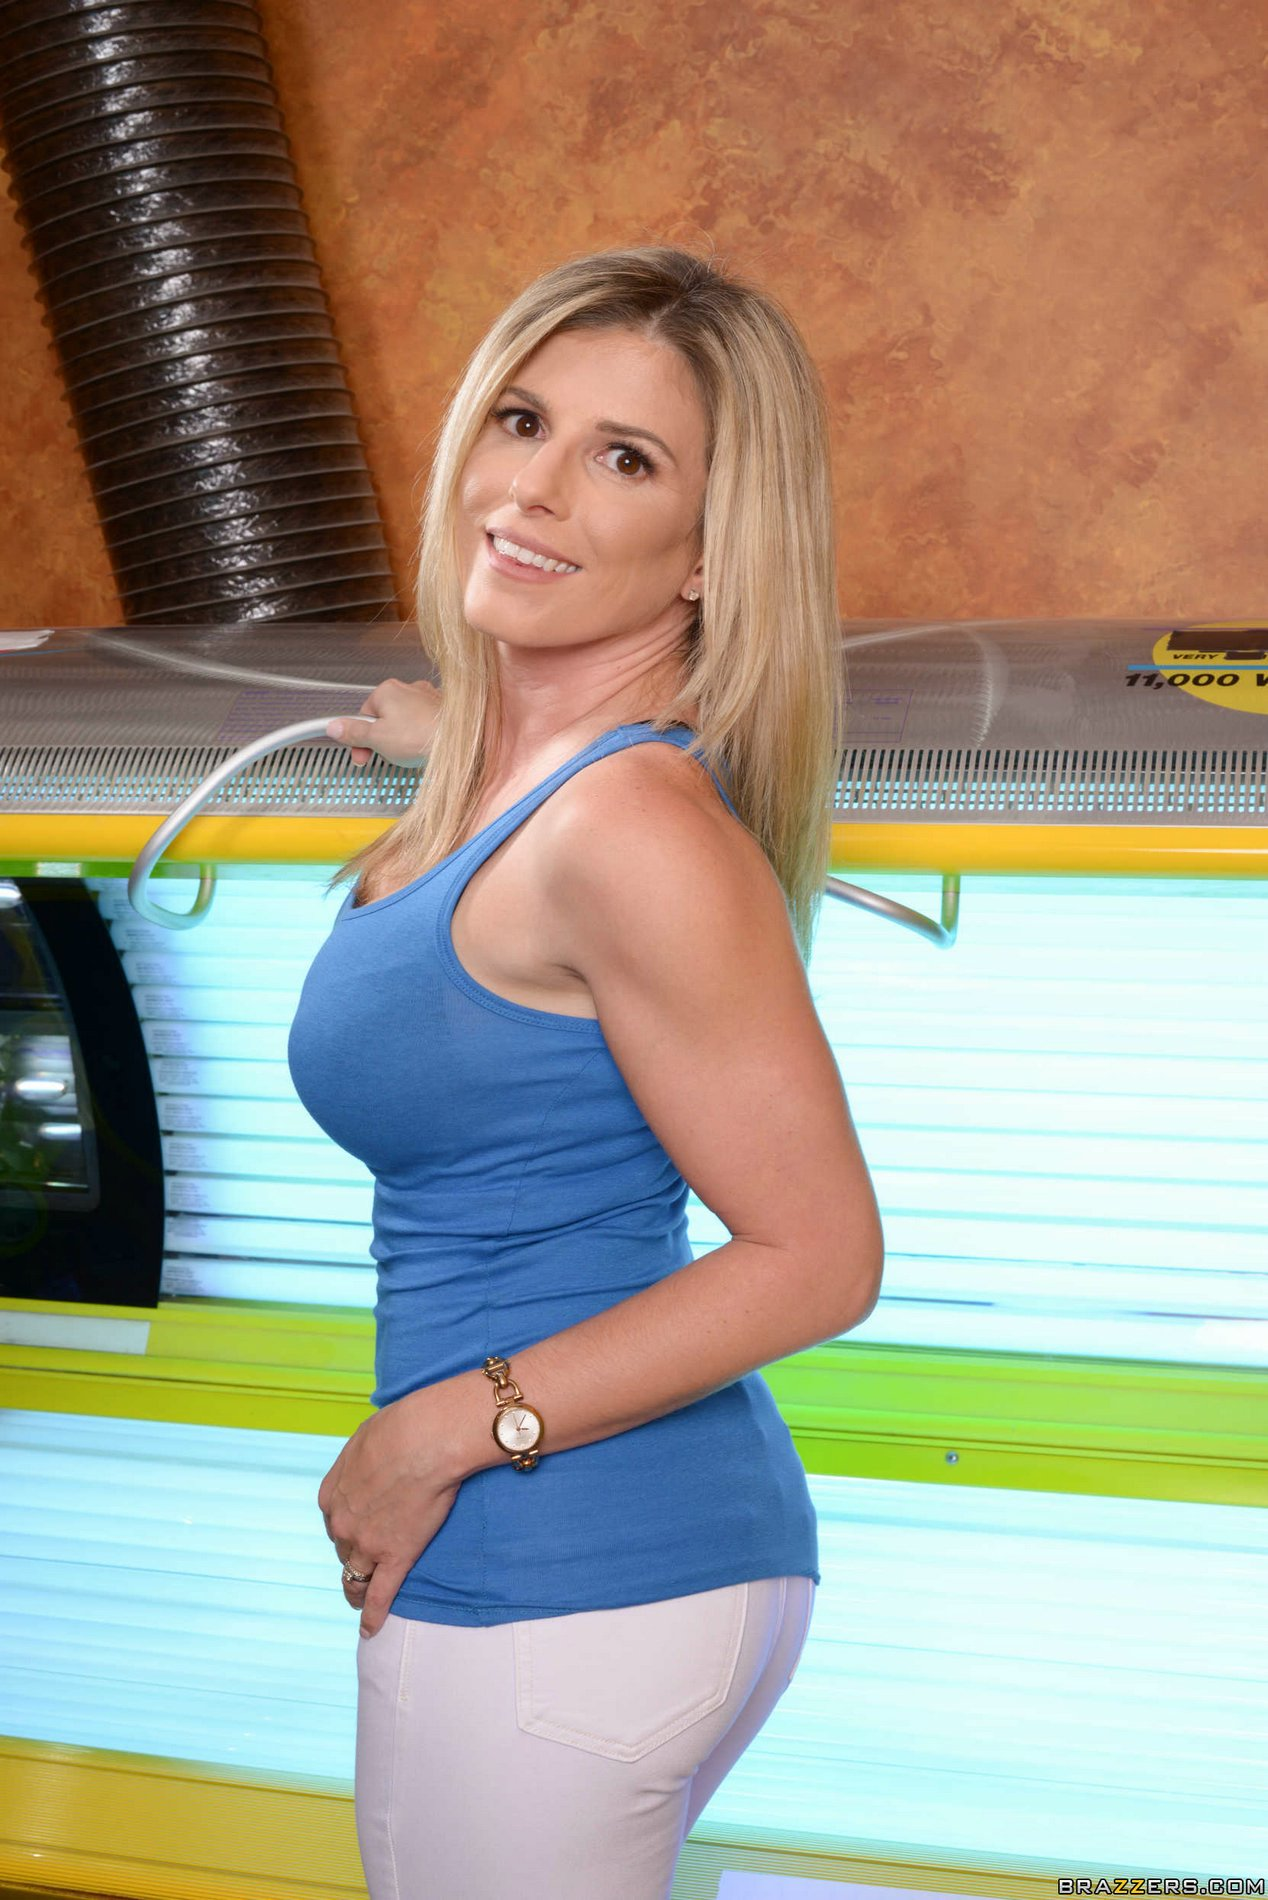 Cory chase milf cleared